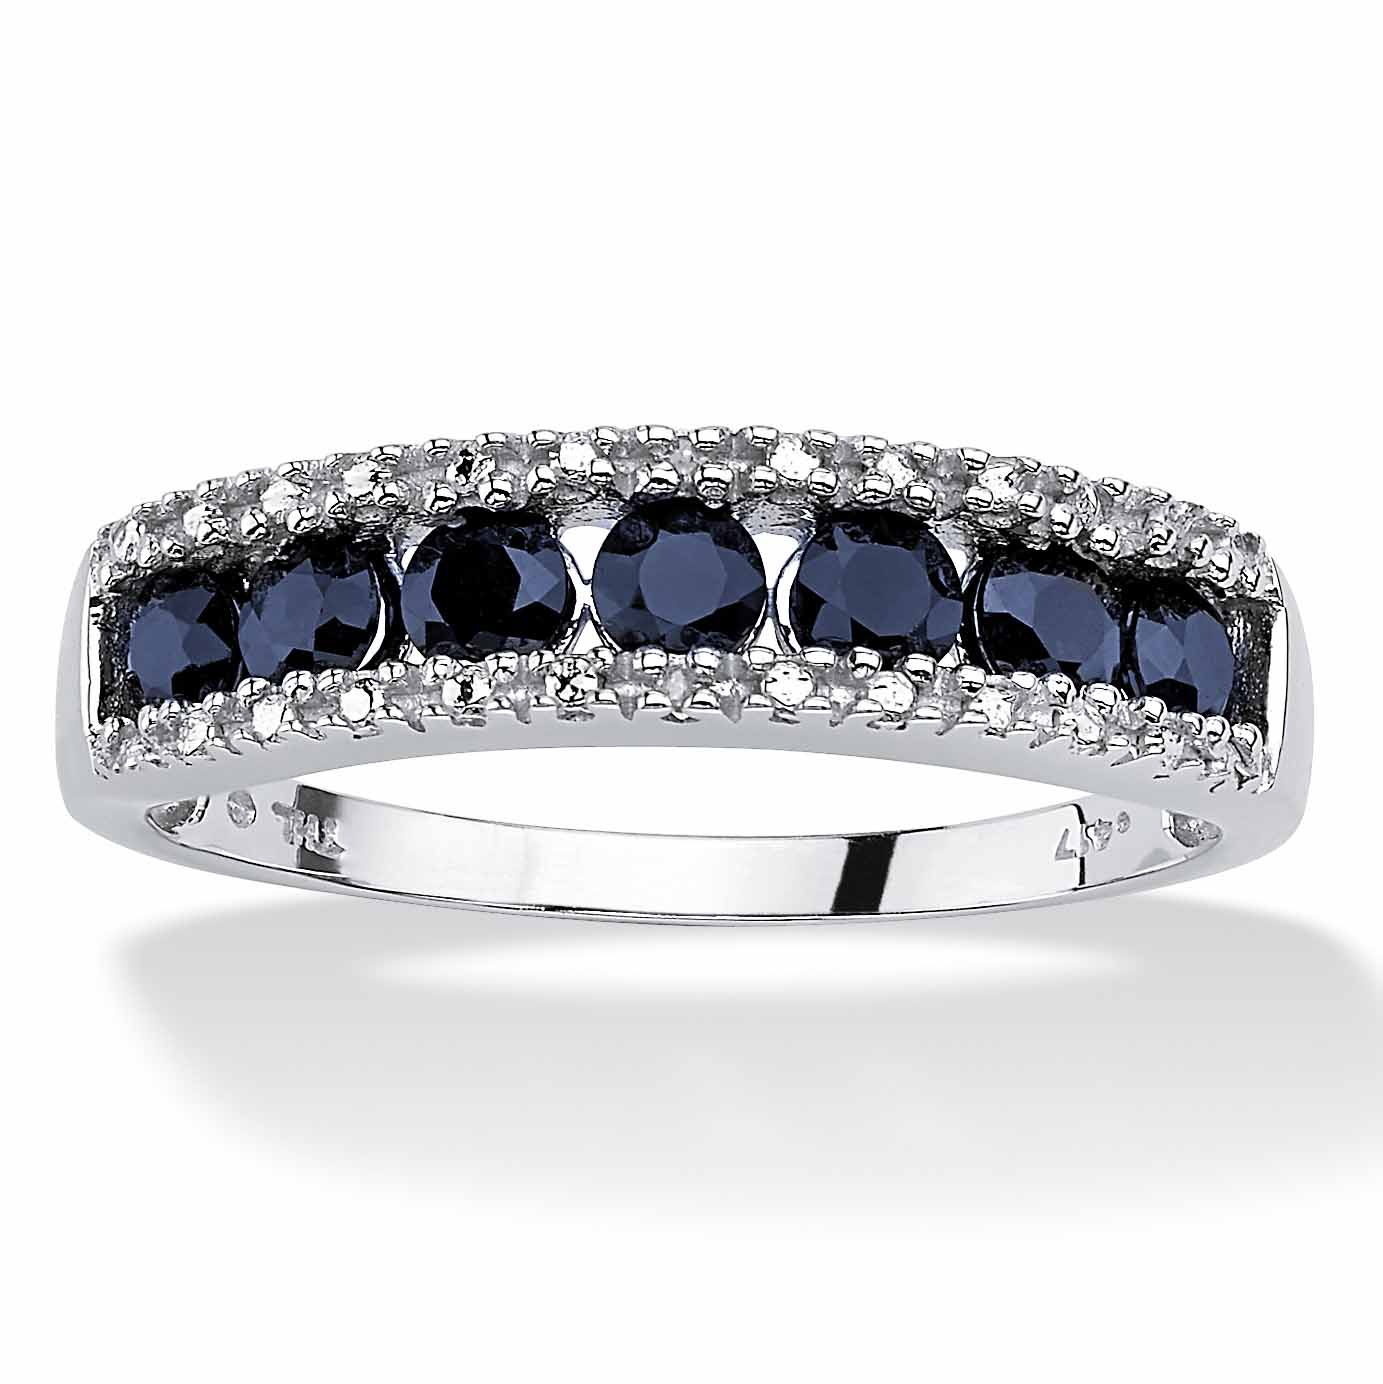 ac7ce7ef7 1.05 TCW Round Genuine Blue Sapphire and Diamond Accent 10k White Gold Ring  at PalmBeach Jewelry